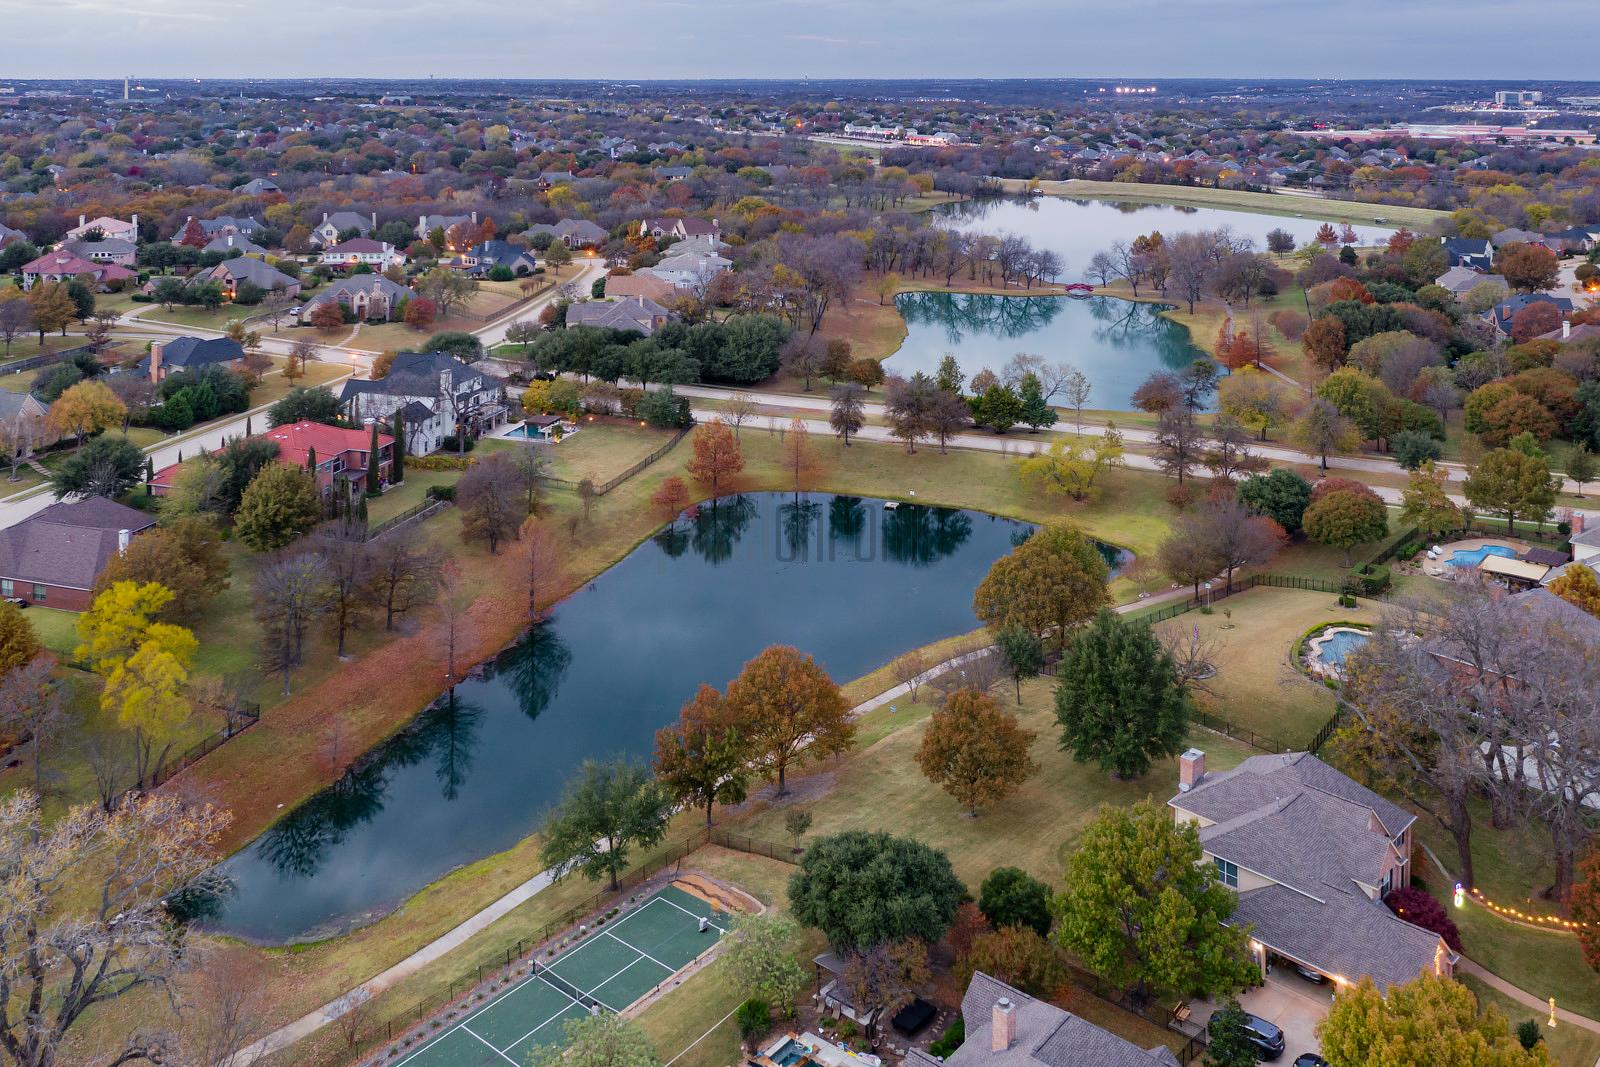 Aerial View of Mallard Lakes, McKinney, Texas